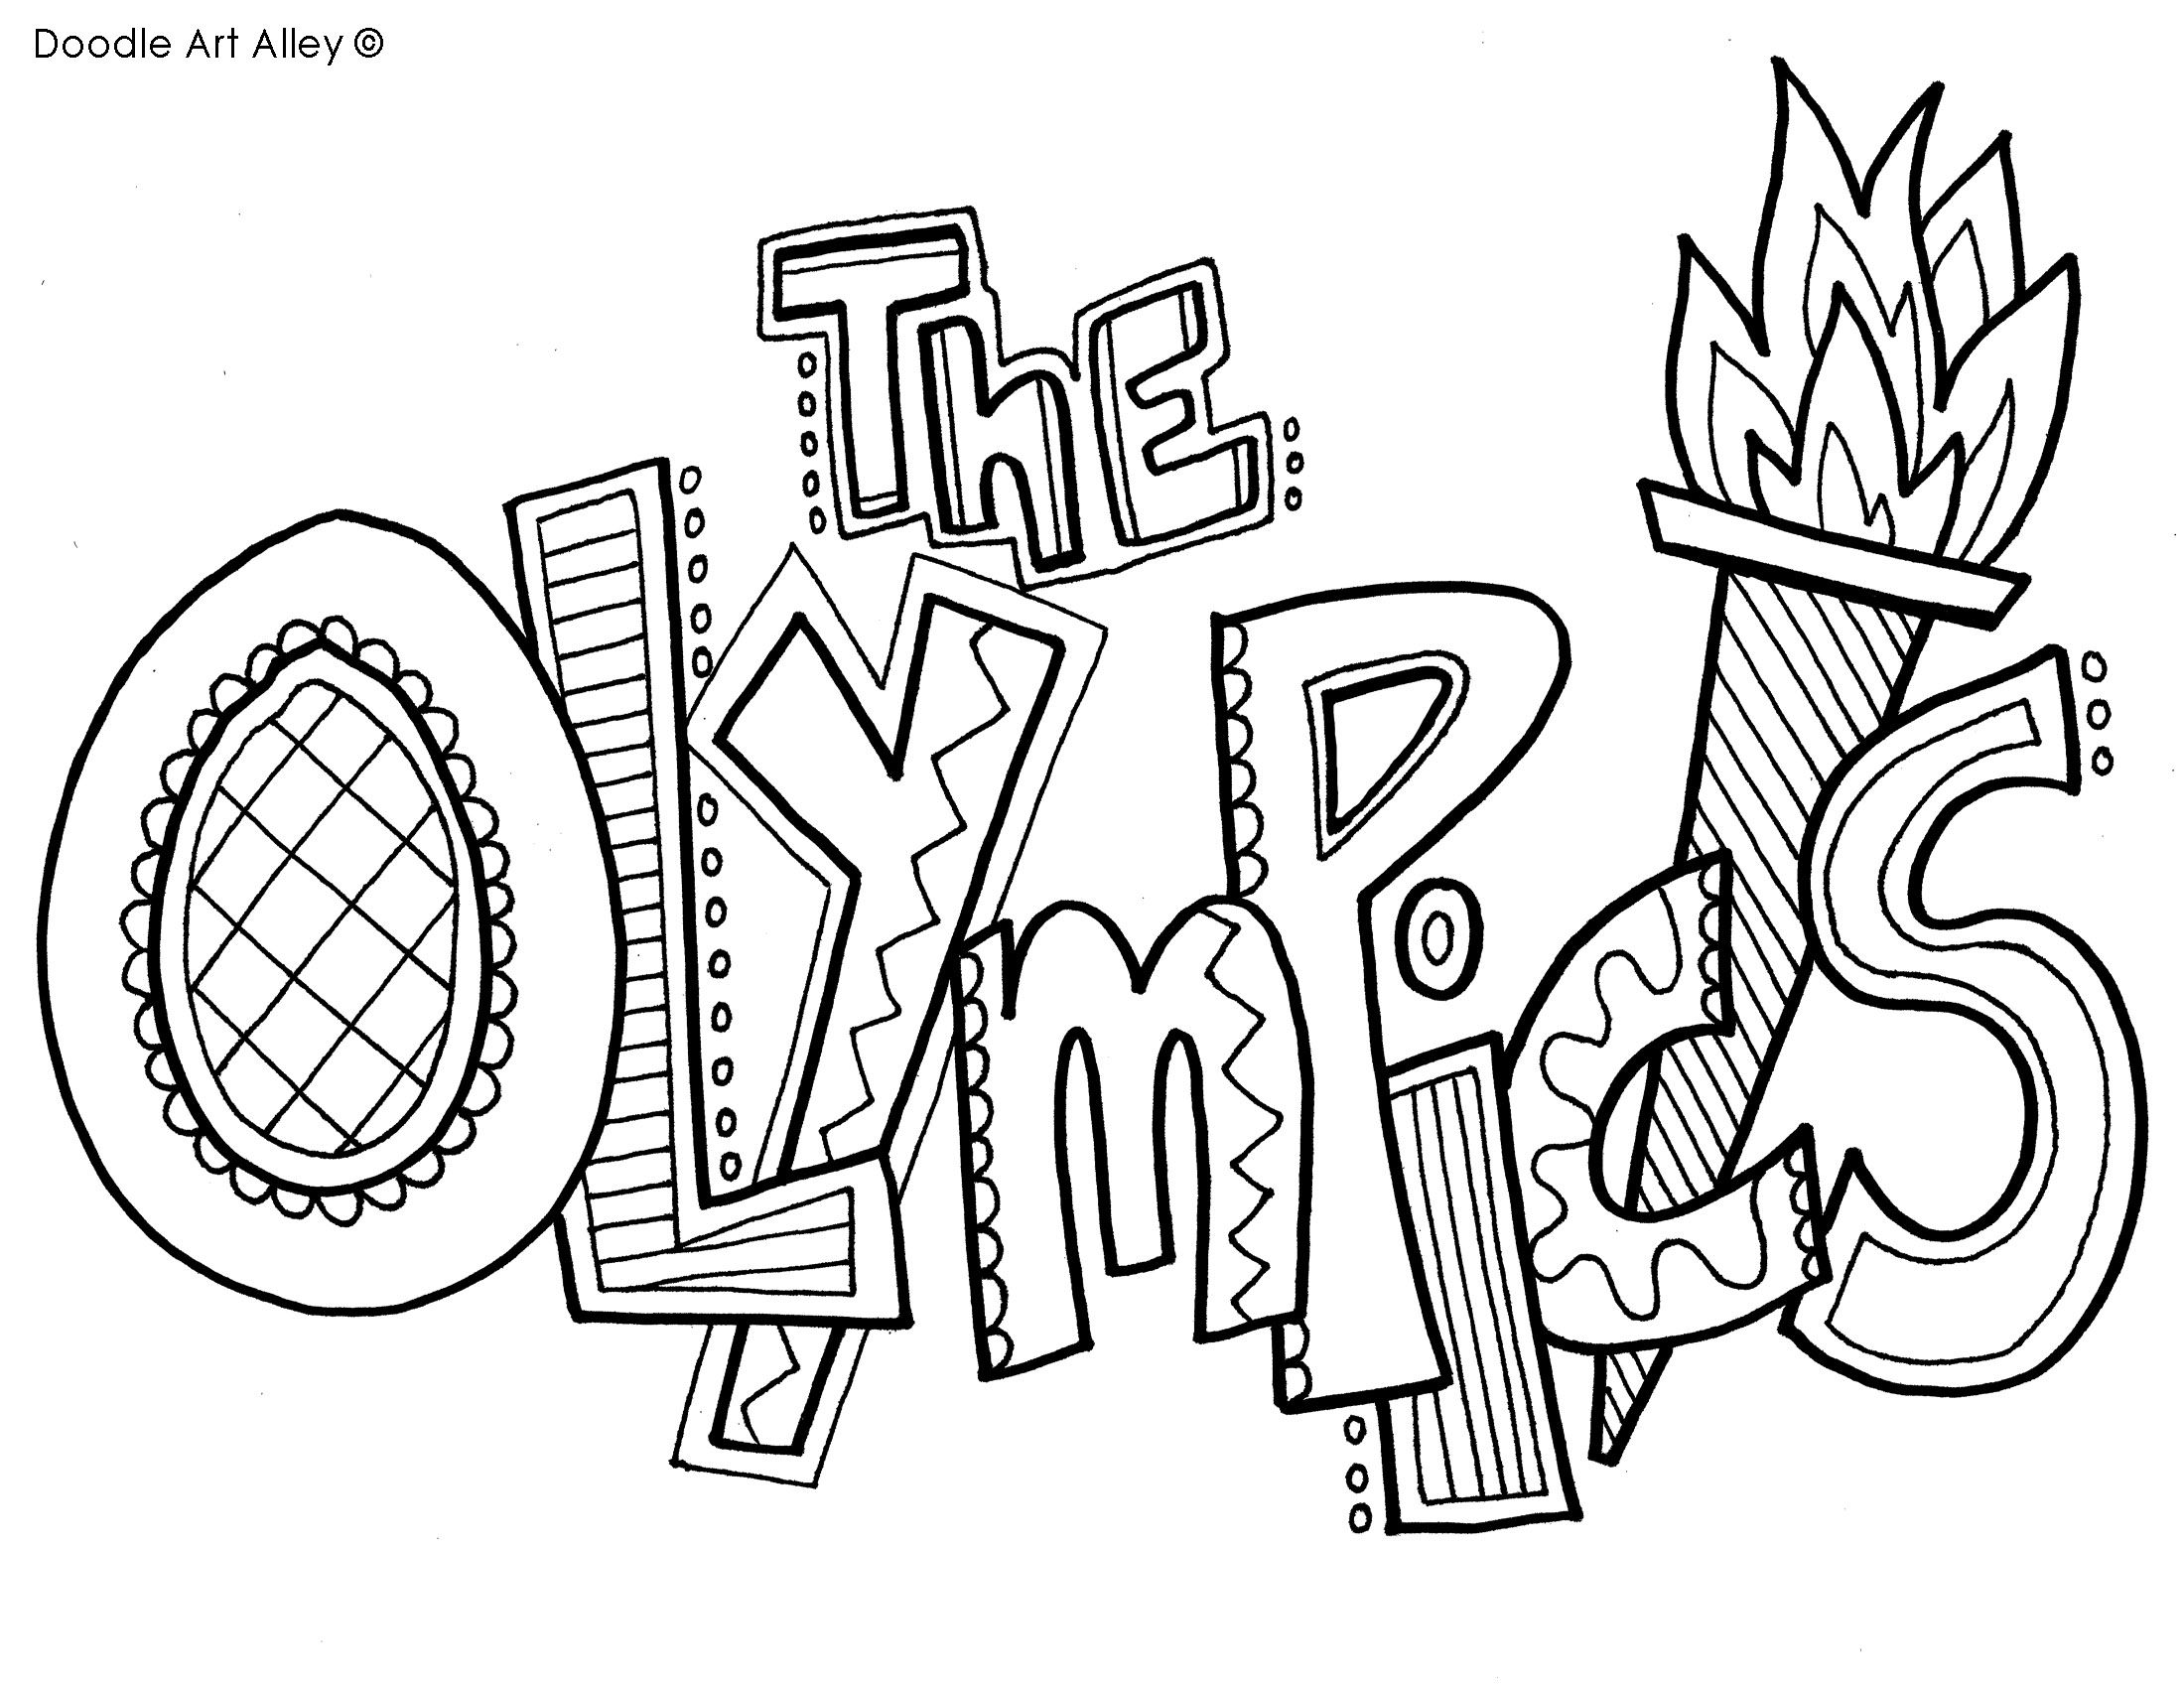 Their creation was inspired by the ancient Olympic Games